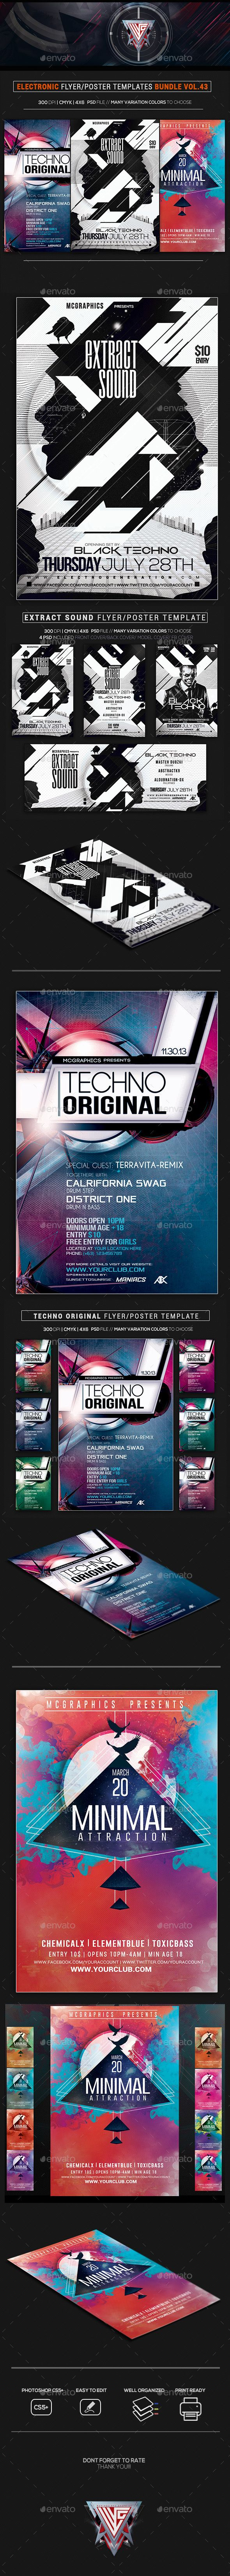 Electro Music Flyer/Poster Bundle Vol. 43 - #Flyers Print Templates Download here:  https://graphicriver.net/item/electro-music-flyerposter-bundle-vol-43/20106731?ref=alena994